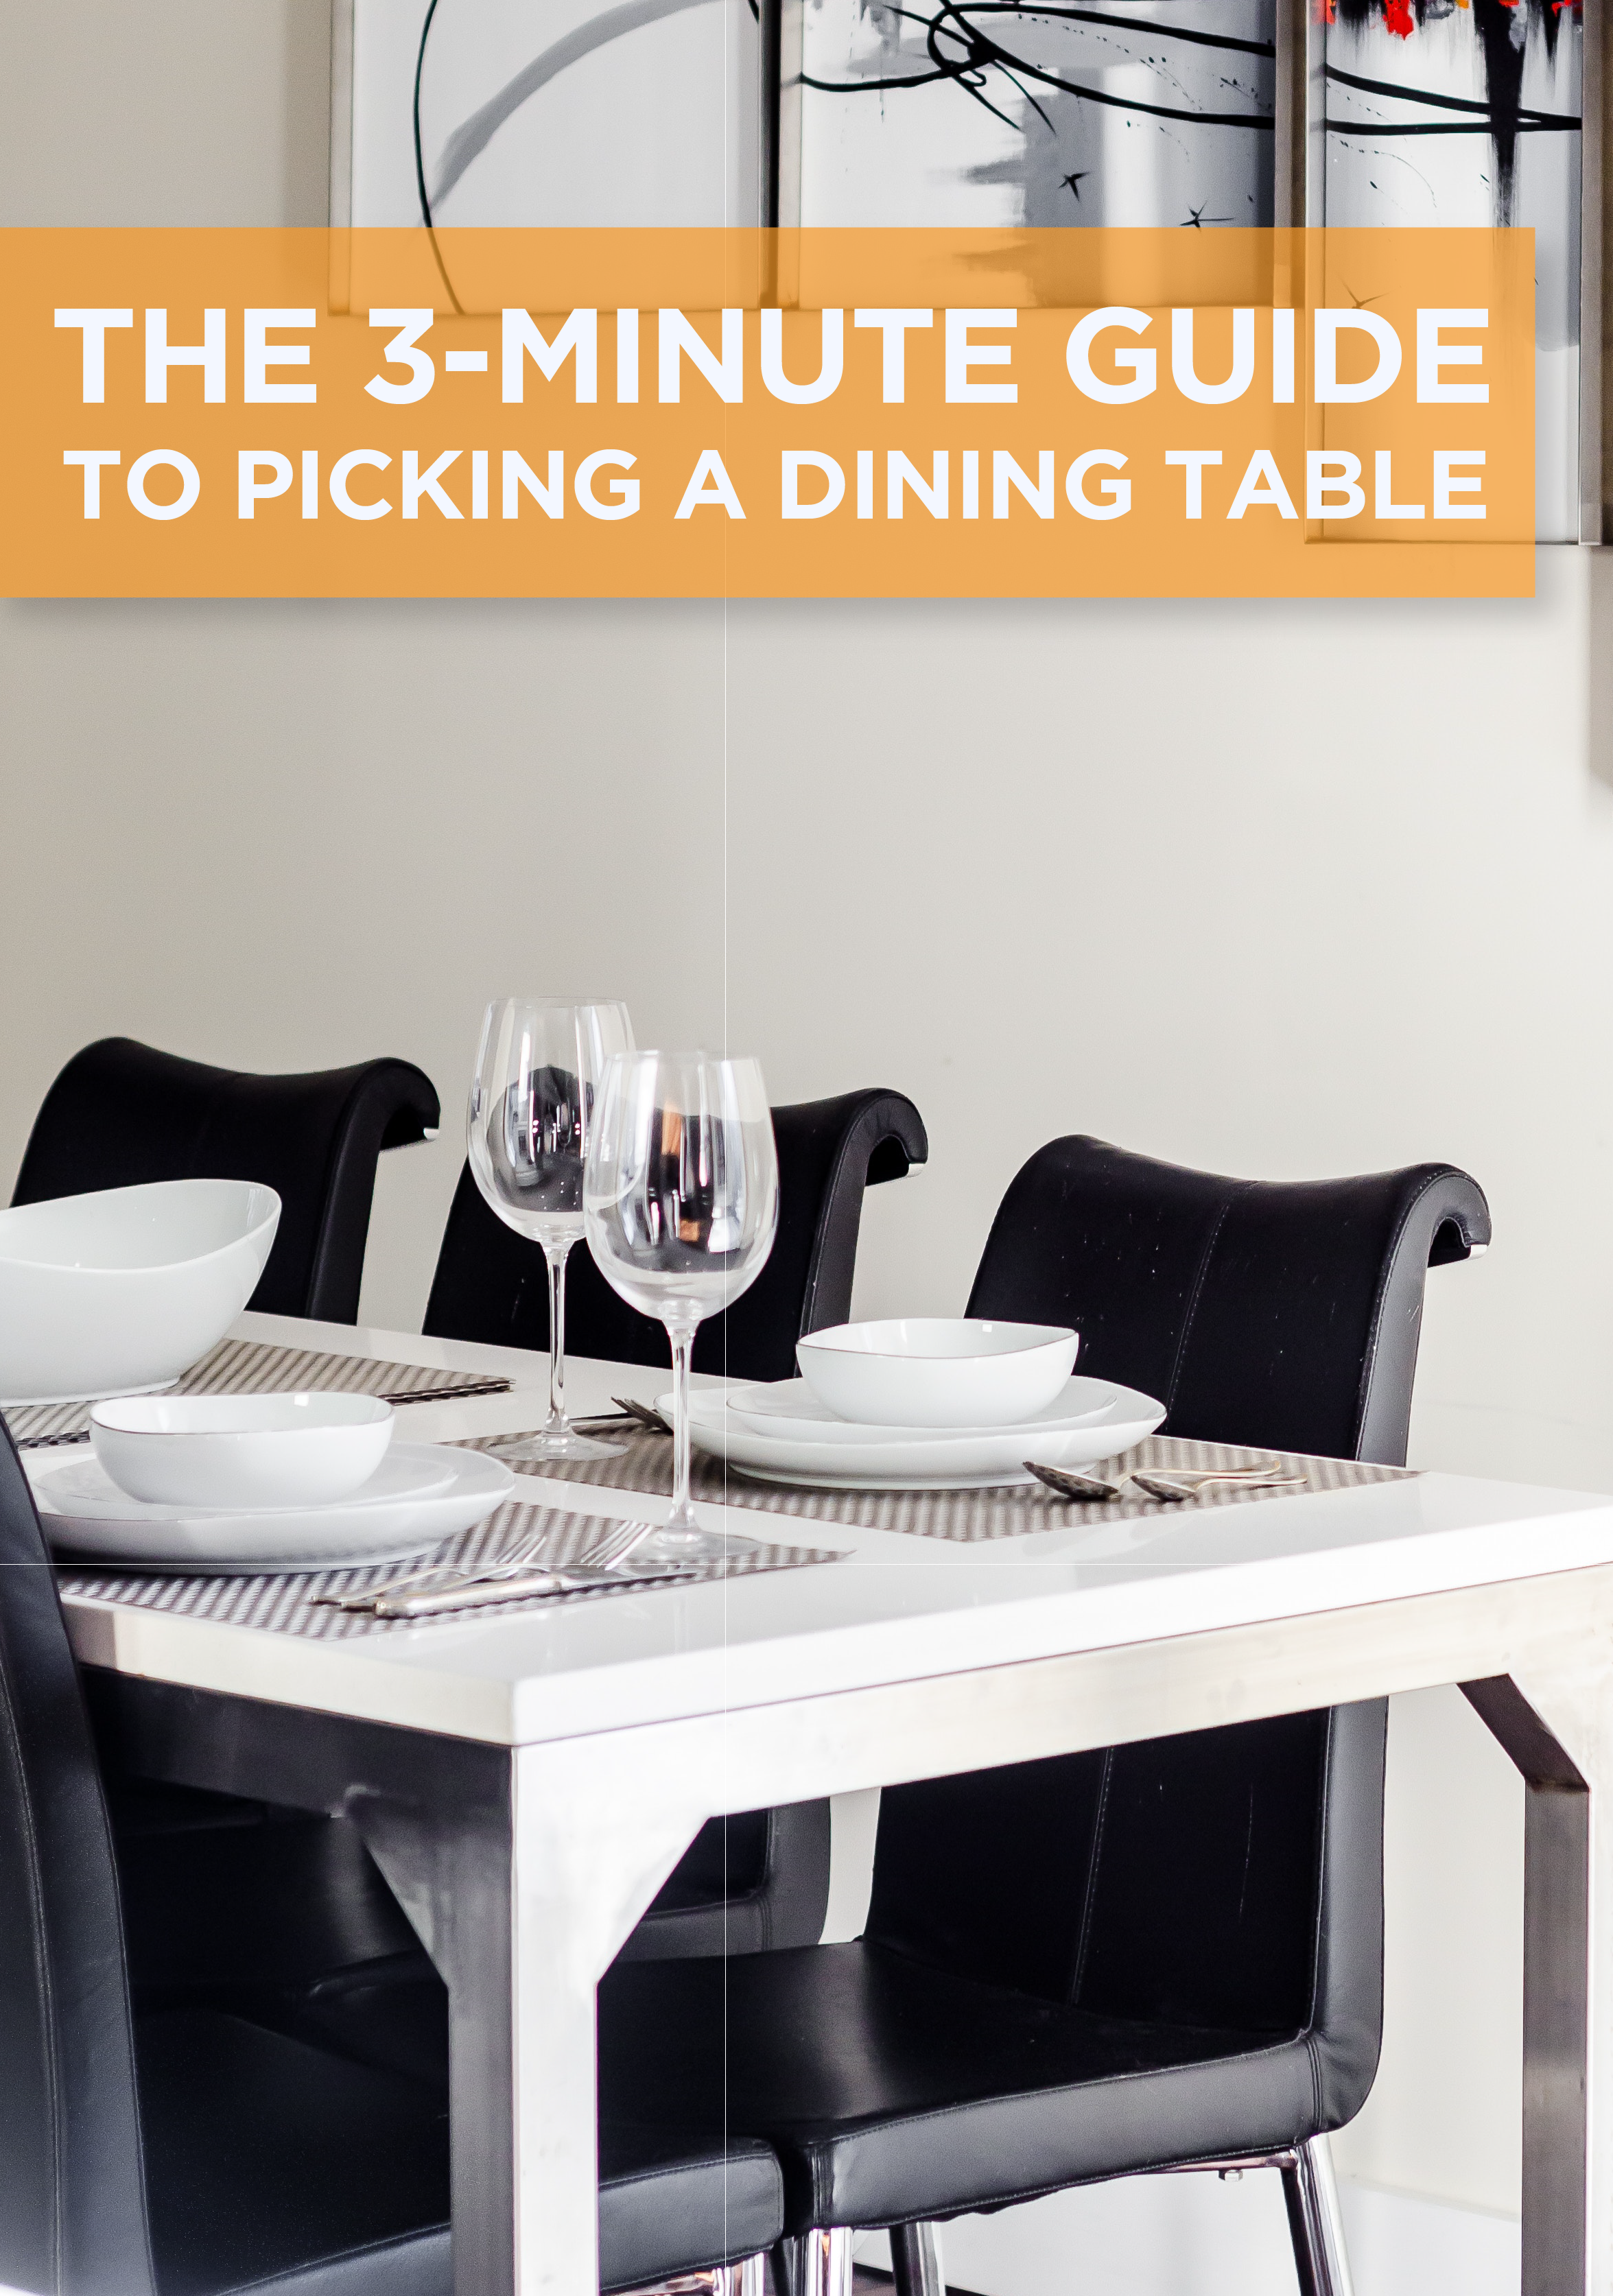 The 3 Minute Guide To Picking A Dining Table #Diningdesignideas #Furniture